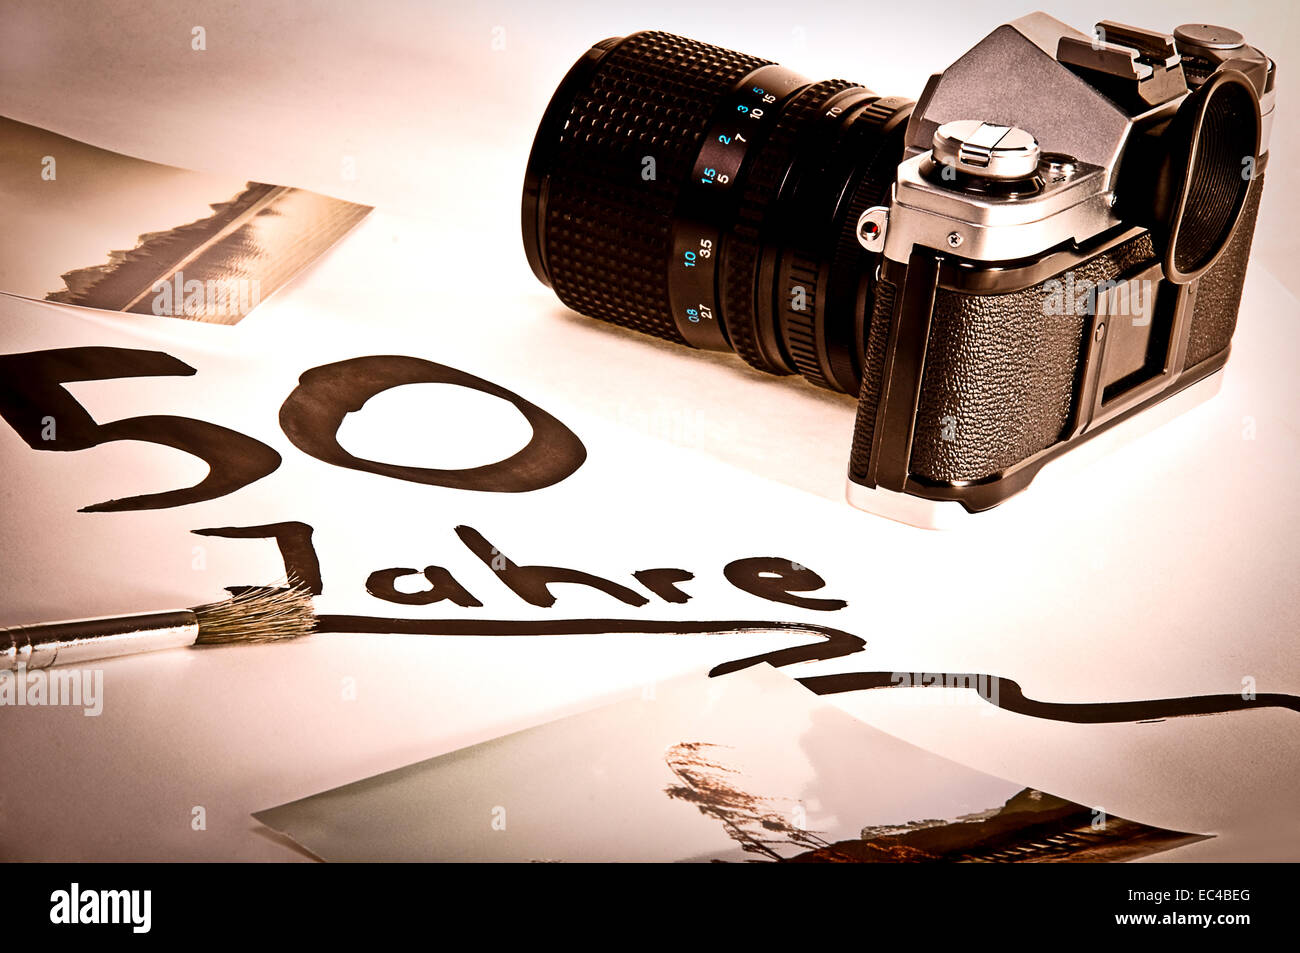 the analog camera in the still lifes - Stock Image